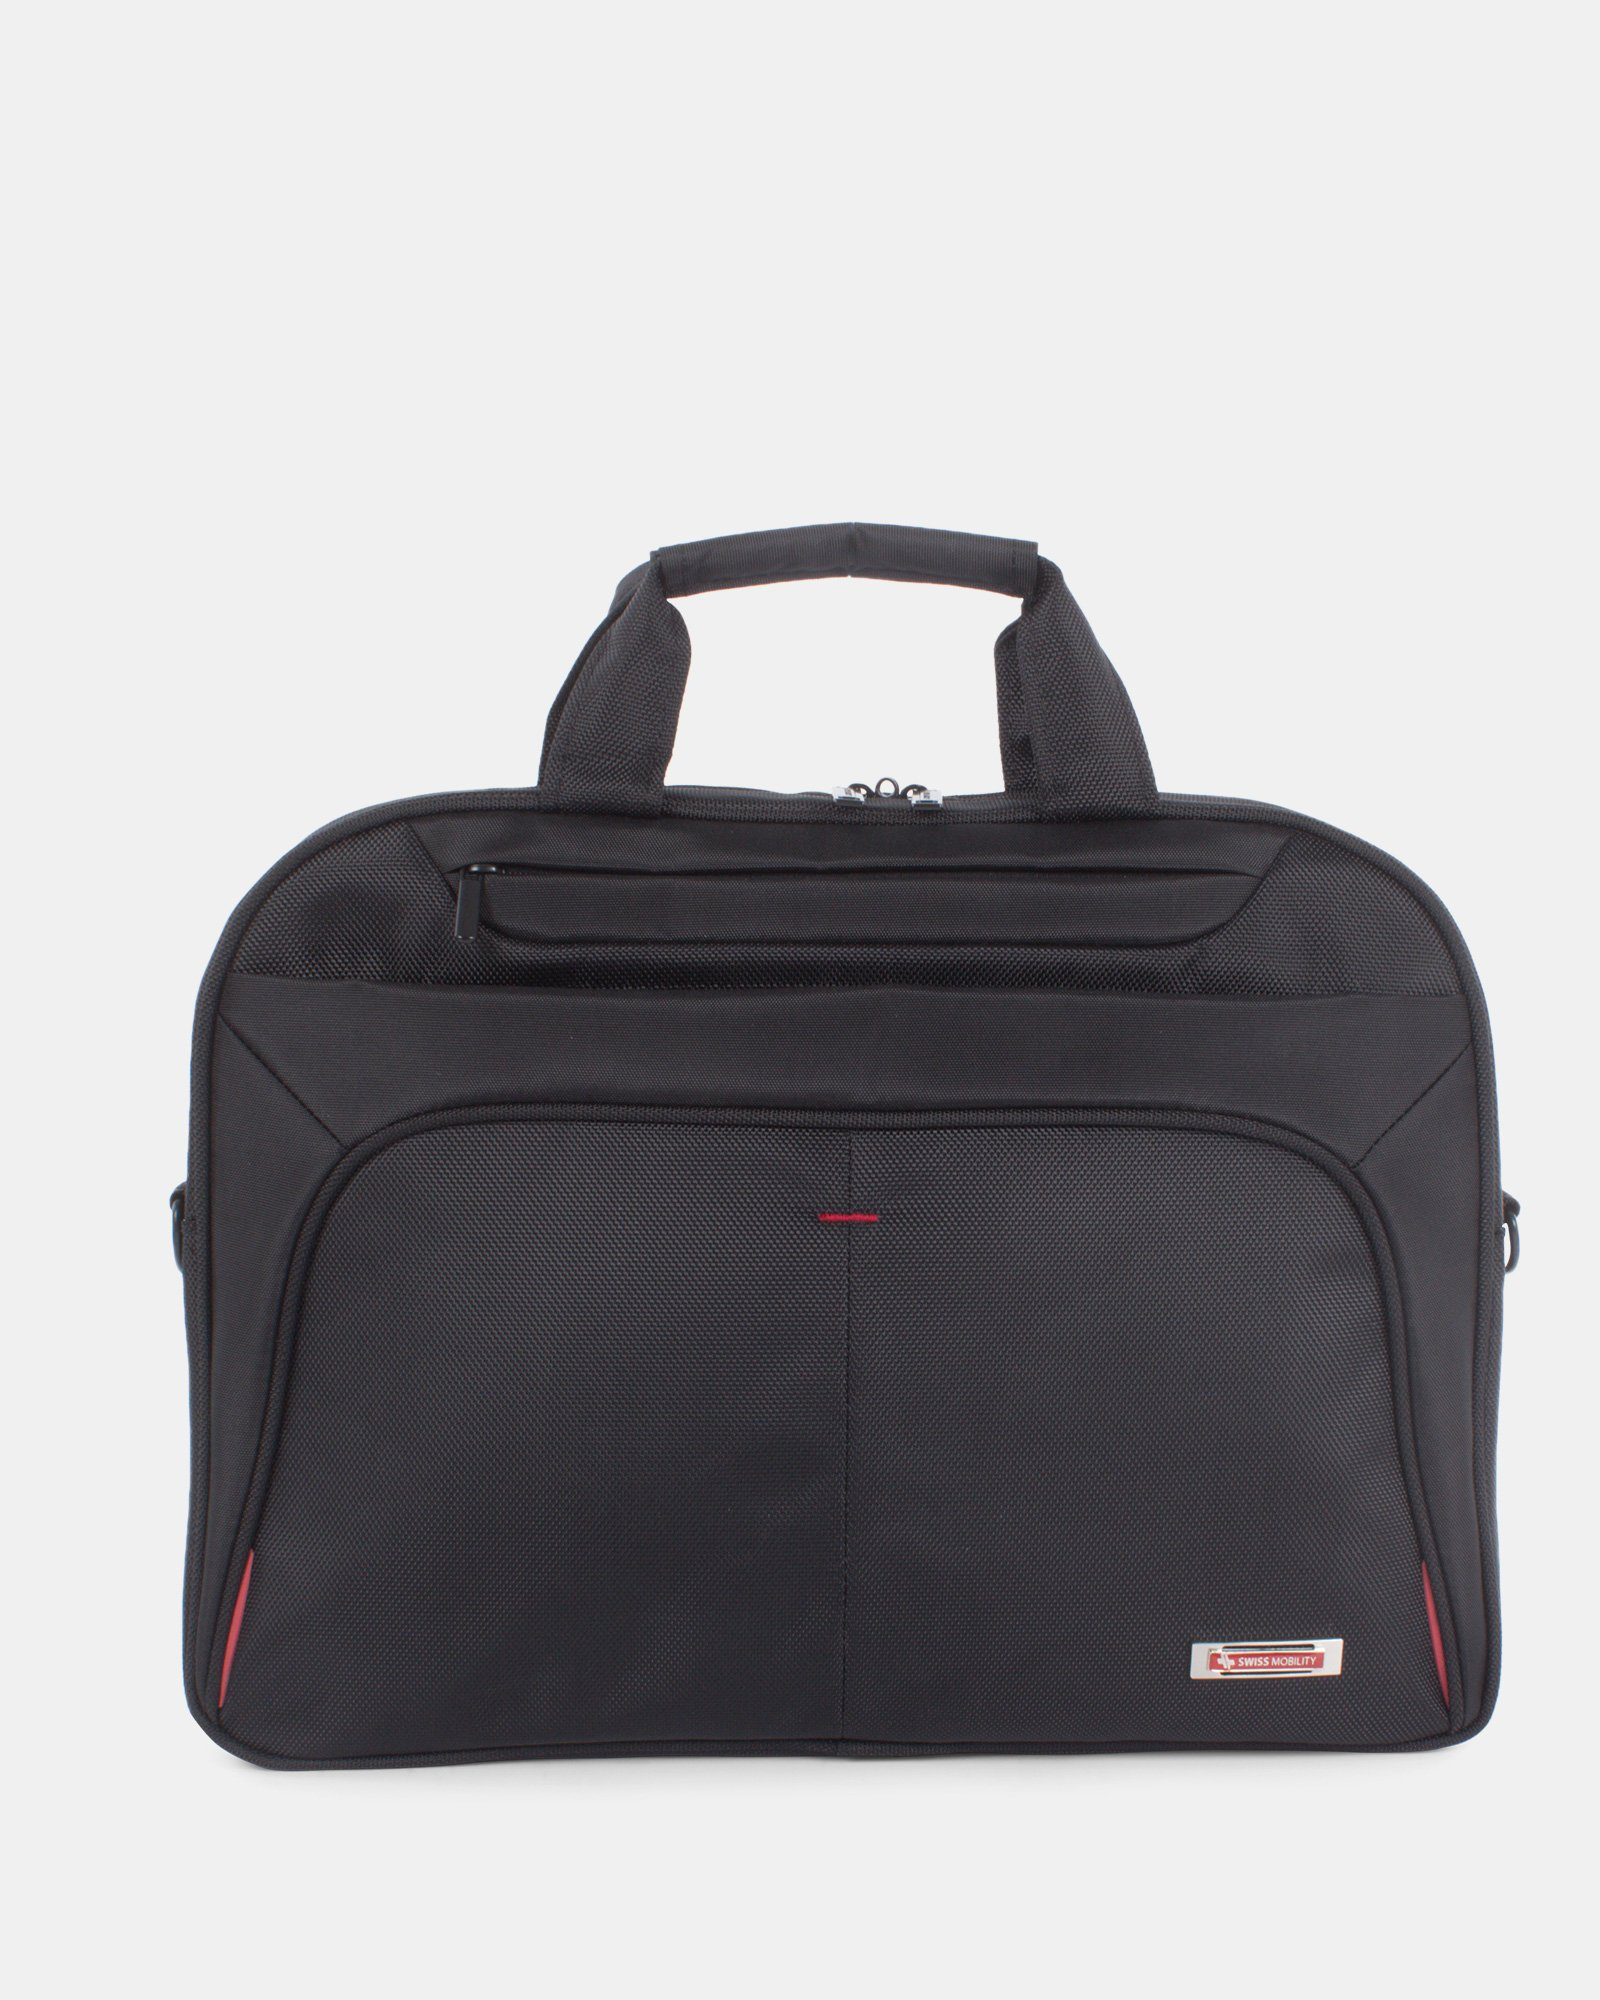 Purpose - Briefcase FOR 15.6 IN LAPTOP AND RFID PROTECTION - BLACK - Swiss Mobility - Zoom